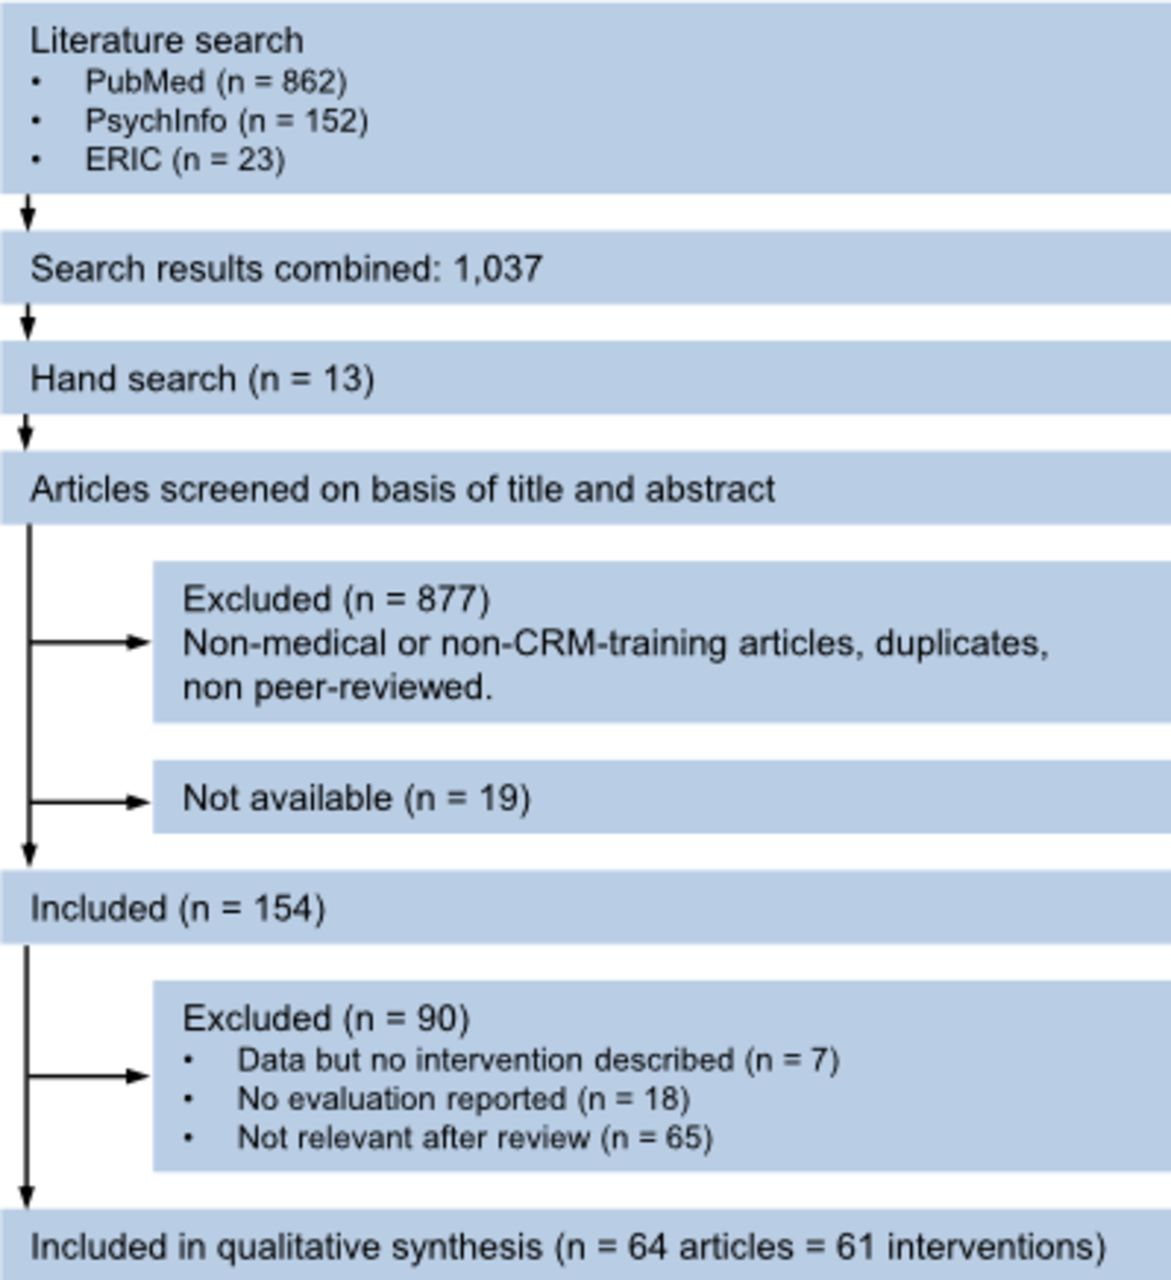 Crew resource management training in healthcare: a systematic review